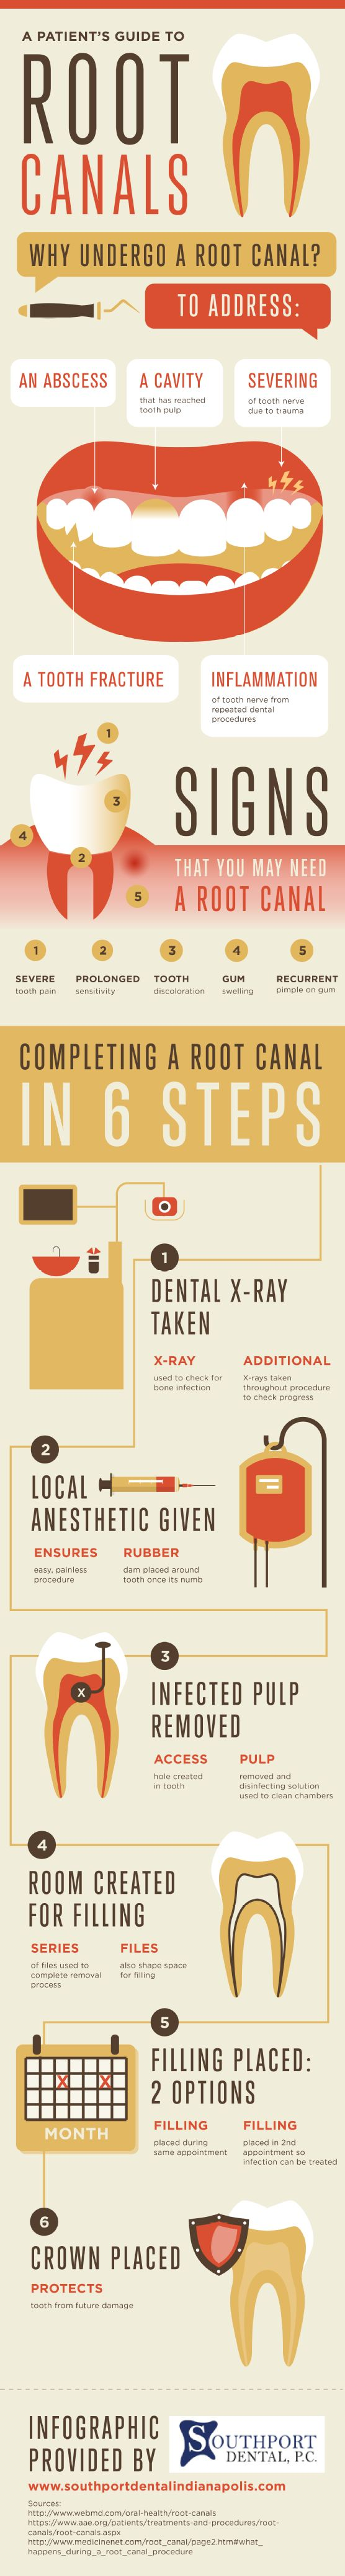 cheap running clothes ireland If a tooth  s nerve is inflamed after repeated dental procedures root canal treatment may be necessary to provide relief Get more details about root canal treatment by clicking over to this infographic from a dentist in Des Moines